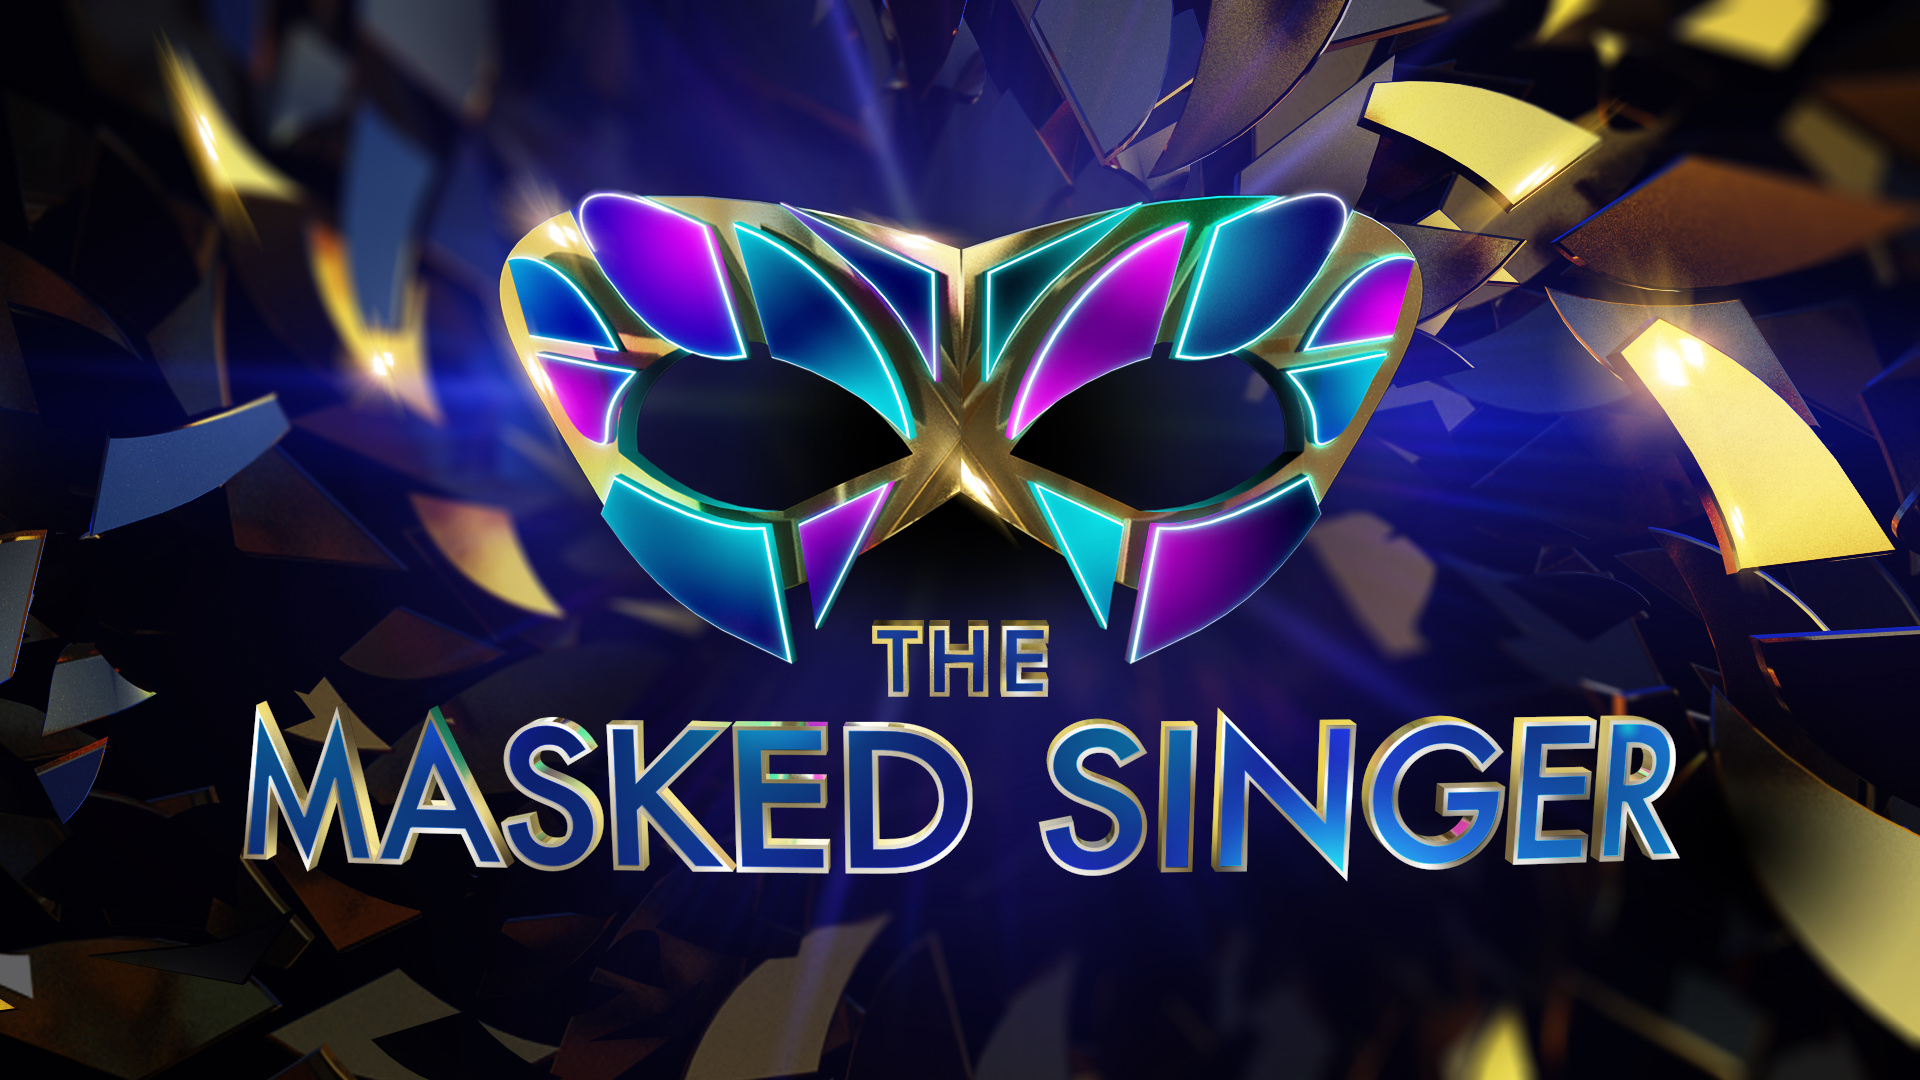 Where is judge Ken Jeong? The Masked Singer UK launches with Mo Gilligan in 2020